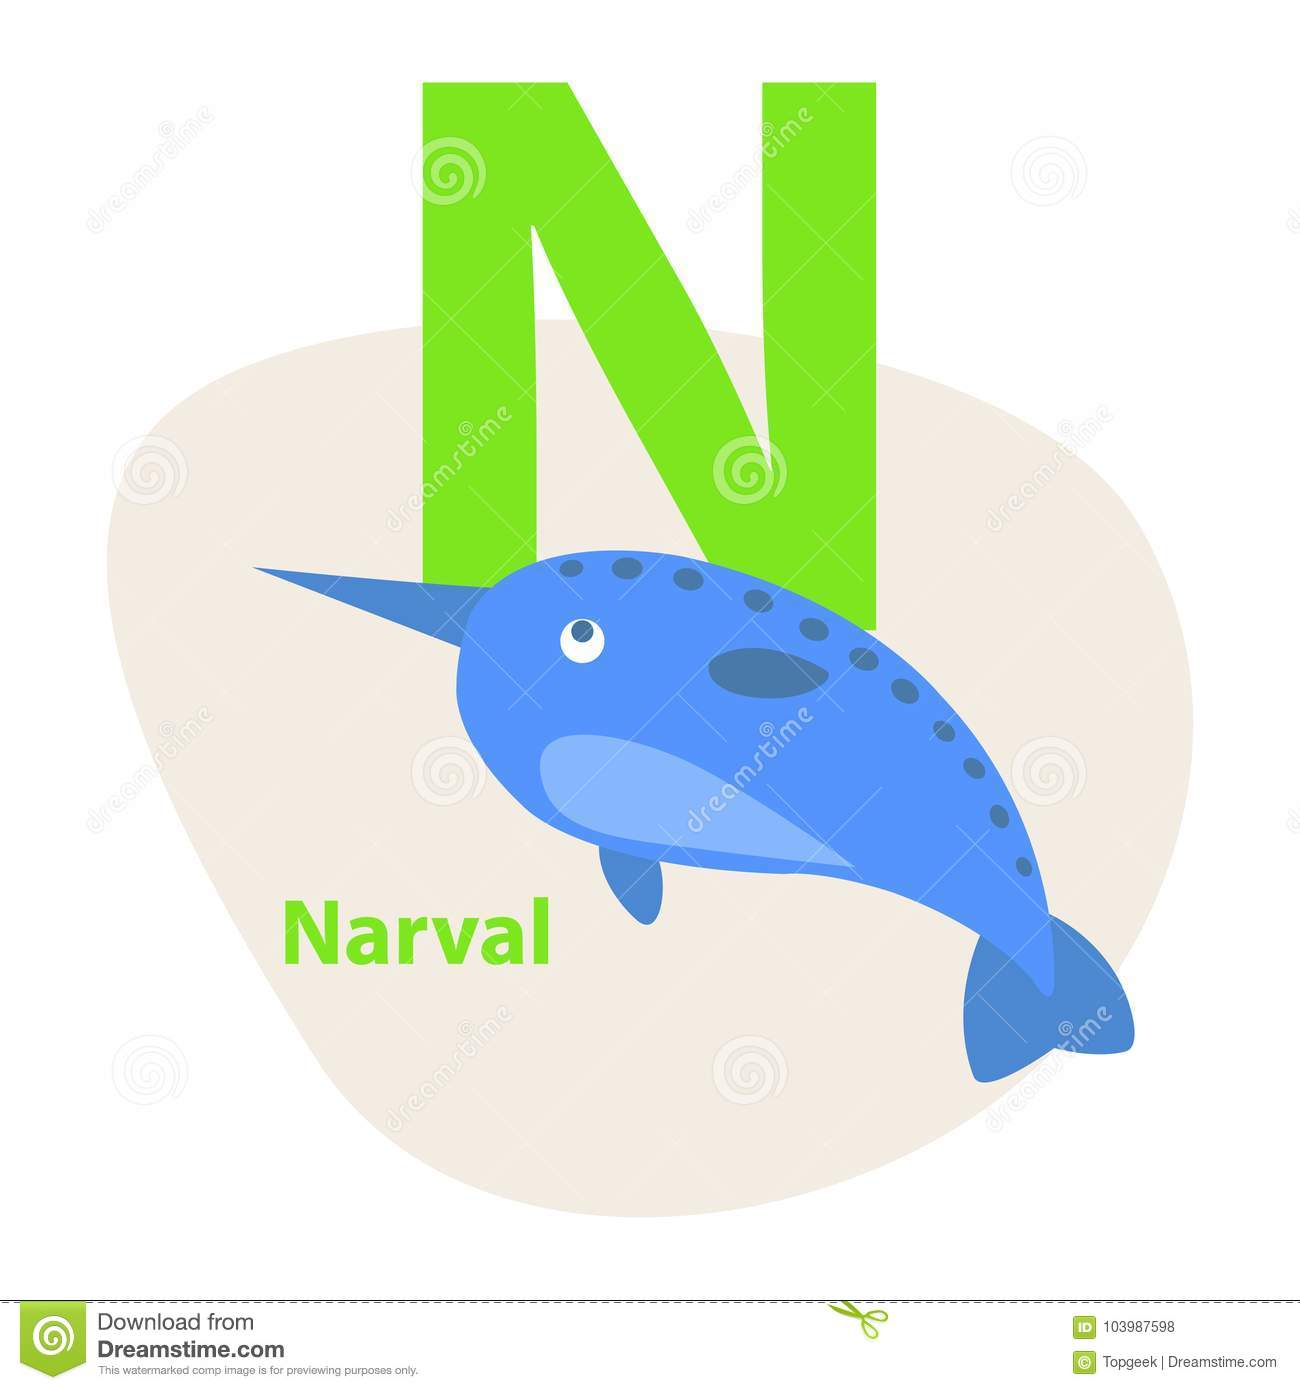 Image of: Letter Children Abc With Cute Animal Cartoon Vector English Letter With Funny Narwhal Flat Illustration Isolated On White Background Dreamstimecom Zoo Abc Letter With Cute Narwhal Cartoon Vector Stock Vector